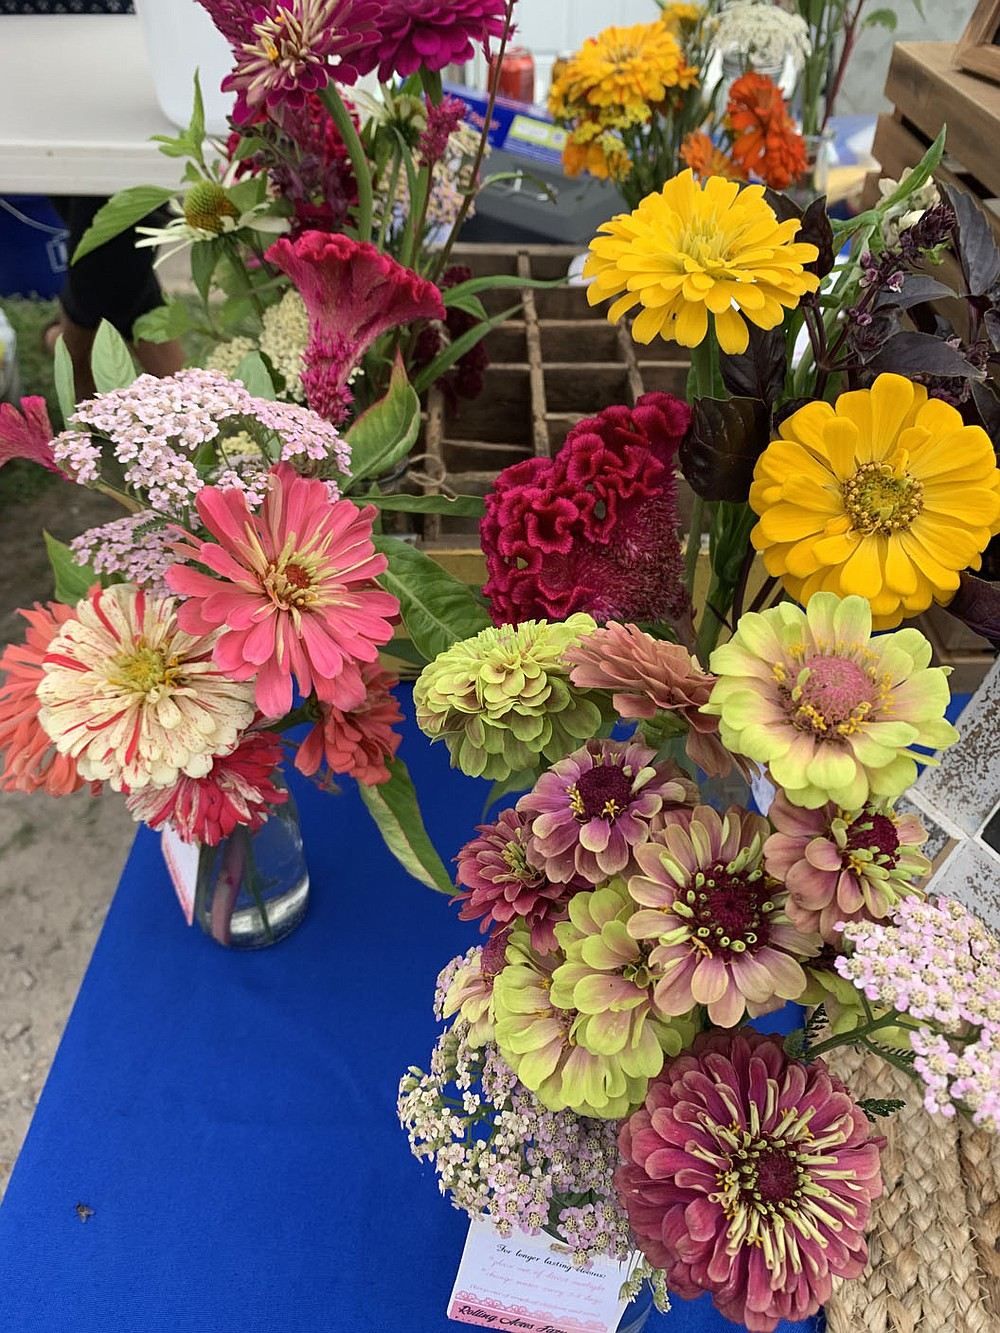 SALLY CARROLL/SPECIAL TO MCDONALD COUNTY PRESS Spring rains have helped these flowers flourish. Jesseca Freese of Rolling Acres Farm offers these beauties every Saturday at Mountain Happenings at Sims Corner.